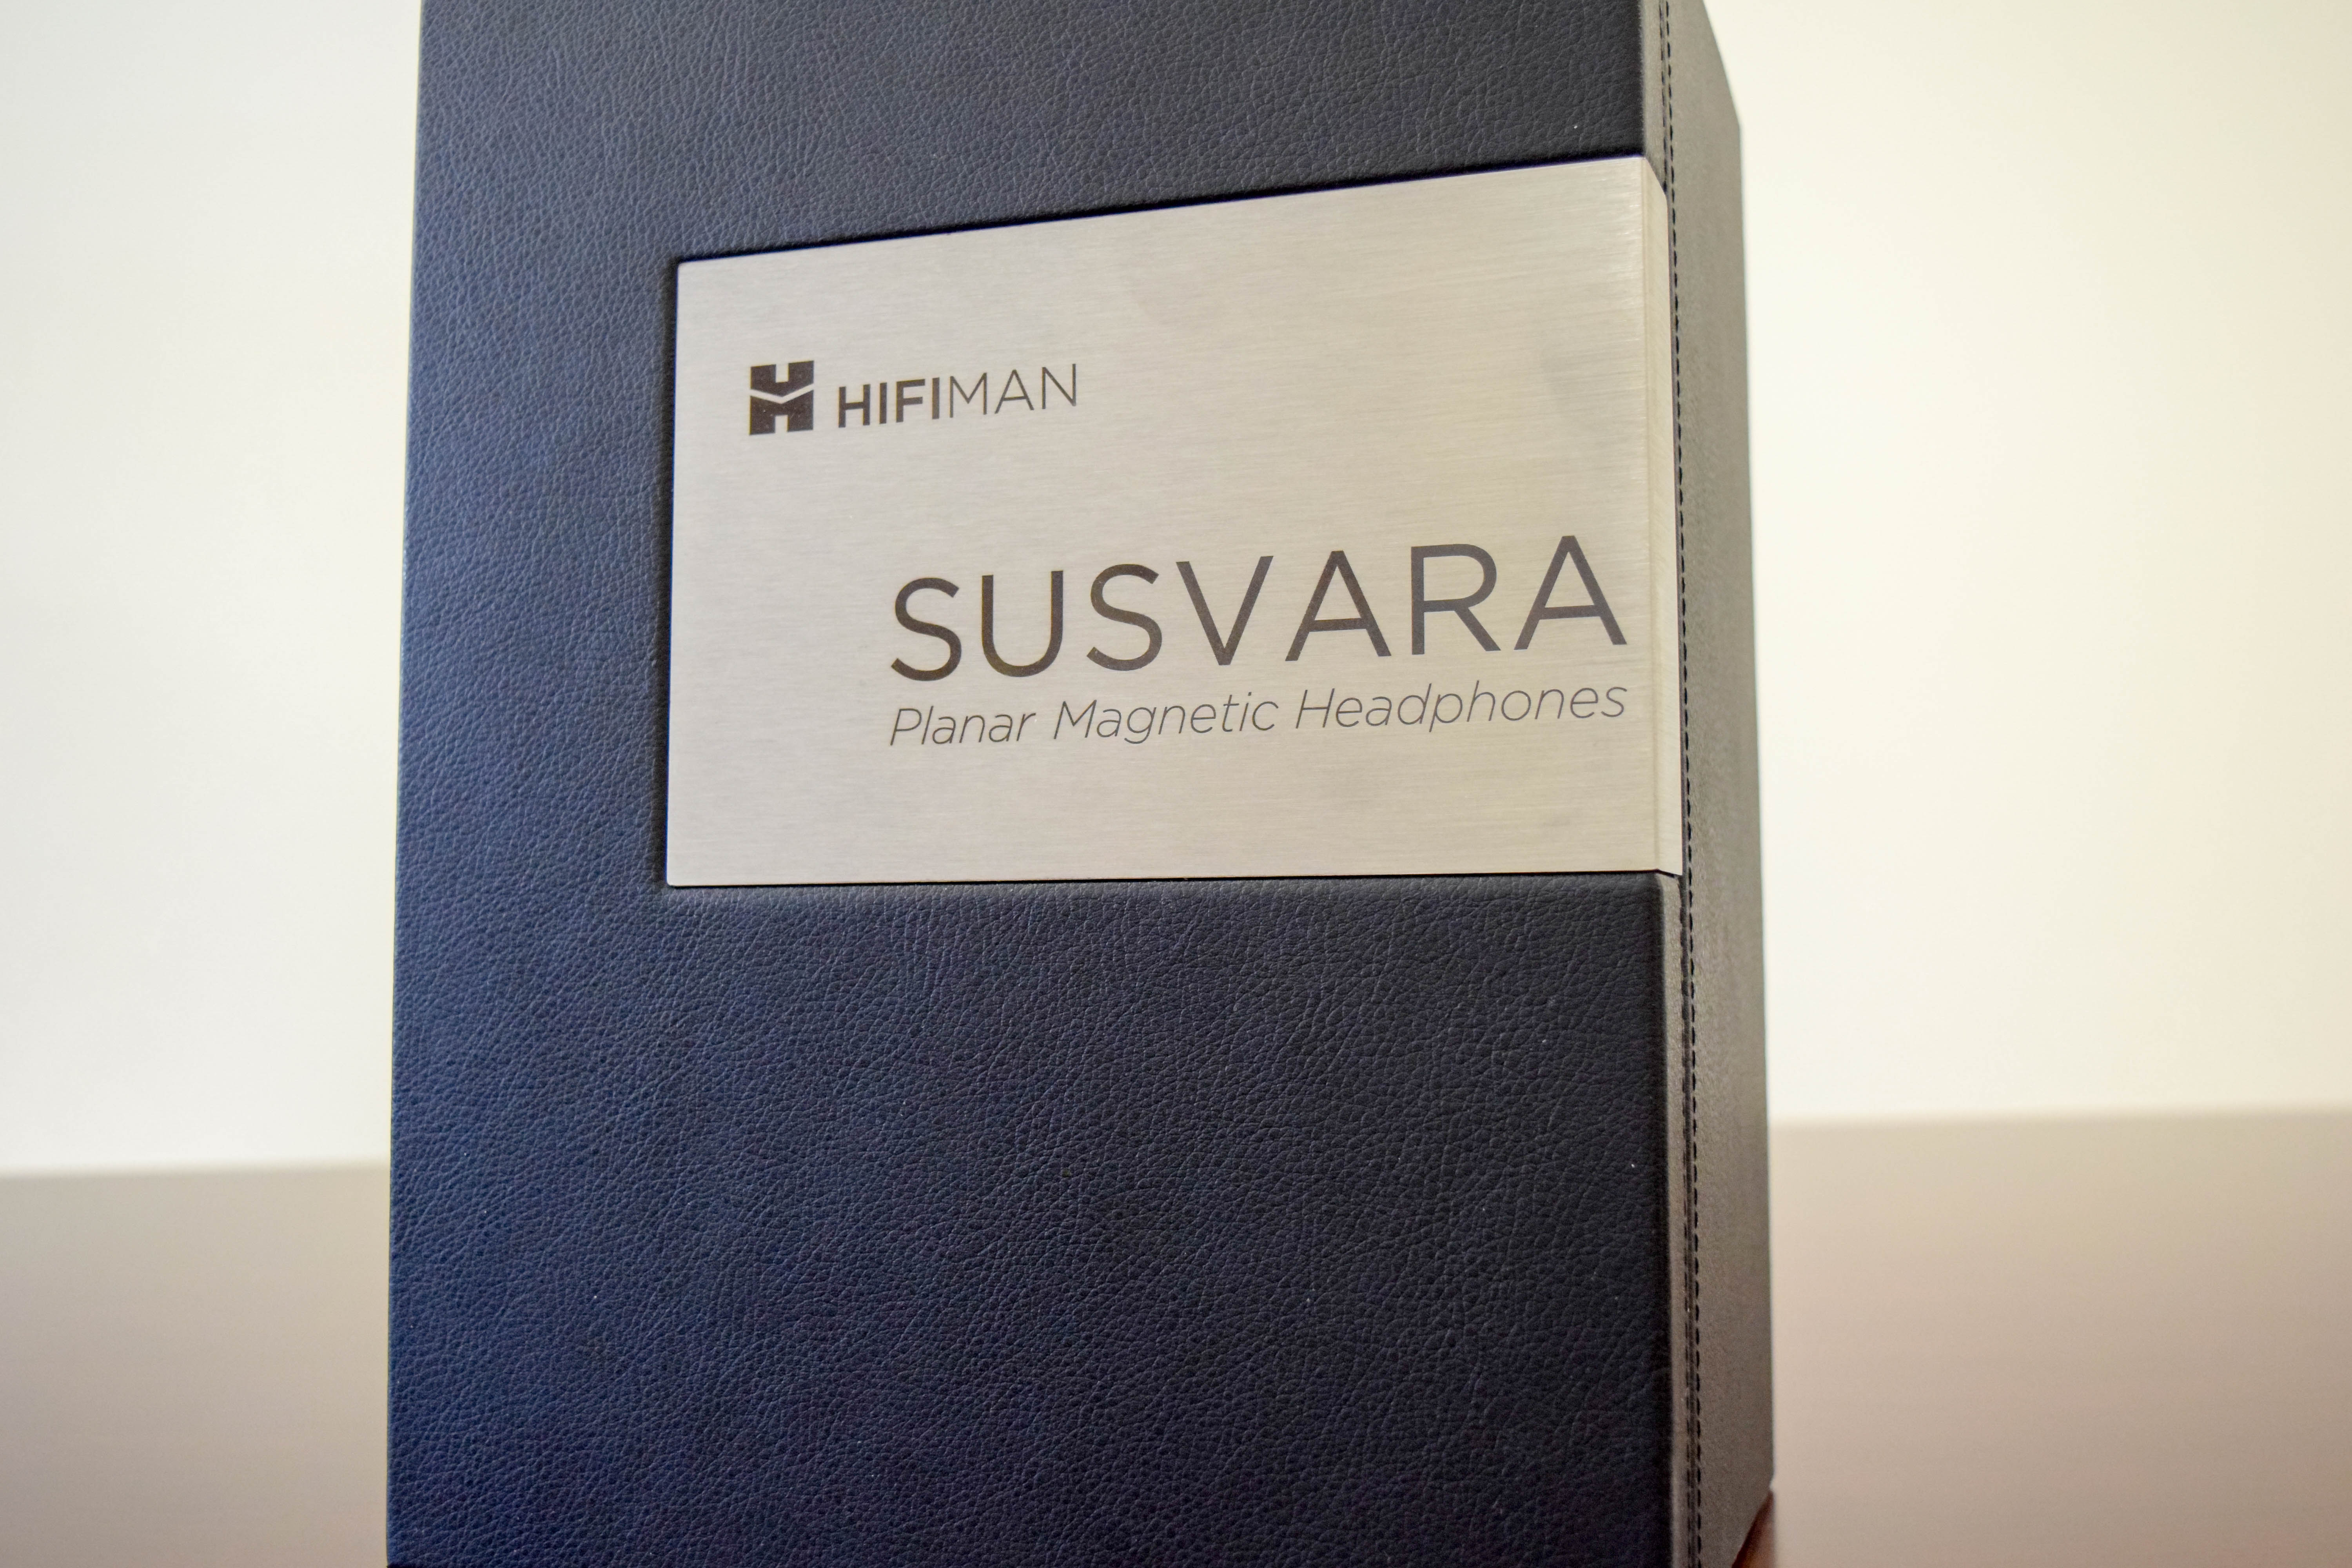 HiFiMAN flagship Susvara headphones in case